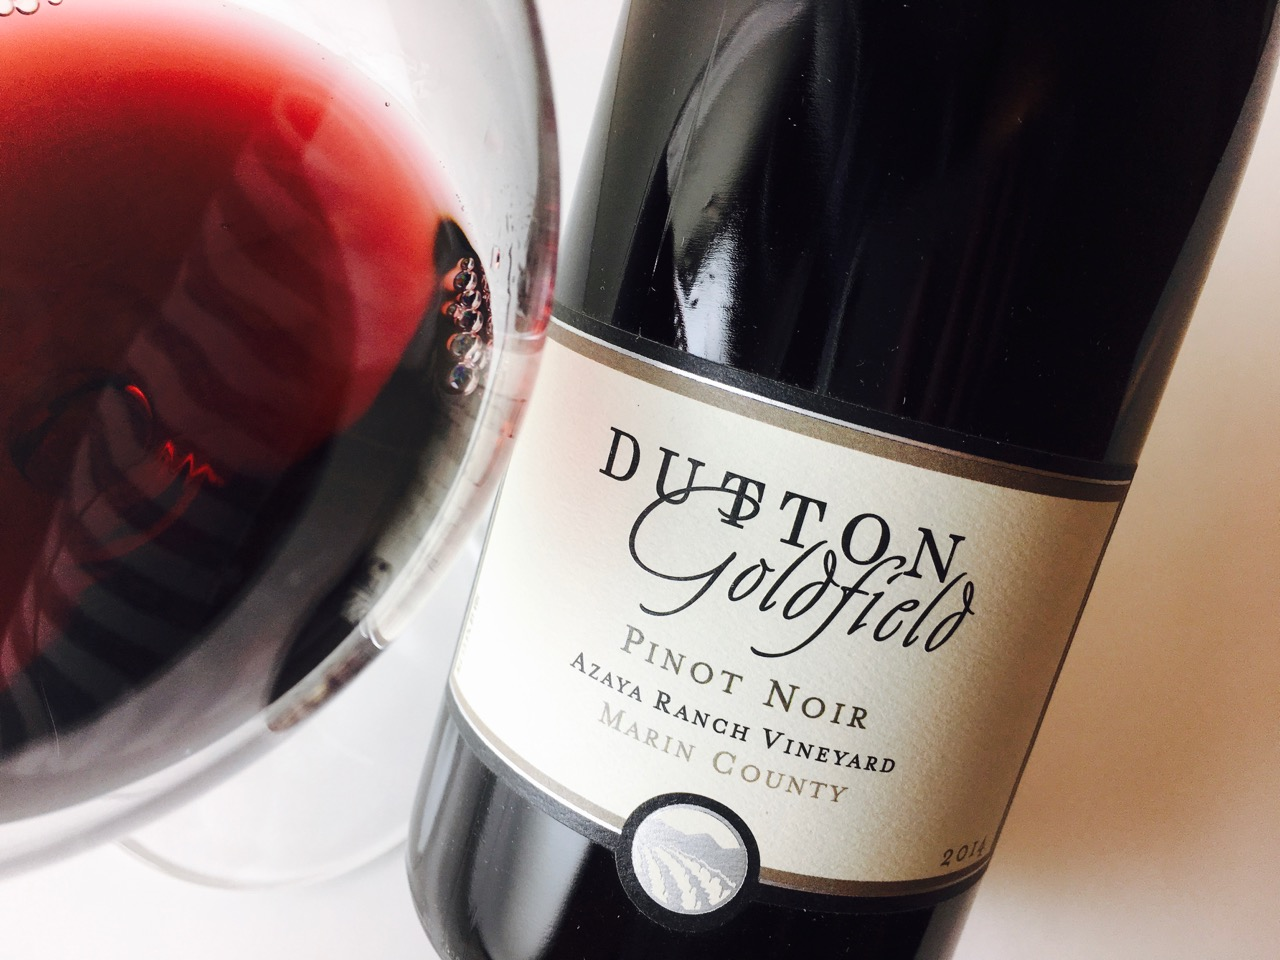 2014 Dutton-Goldfield Pinot Noir Azaya Ranch Marin County